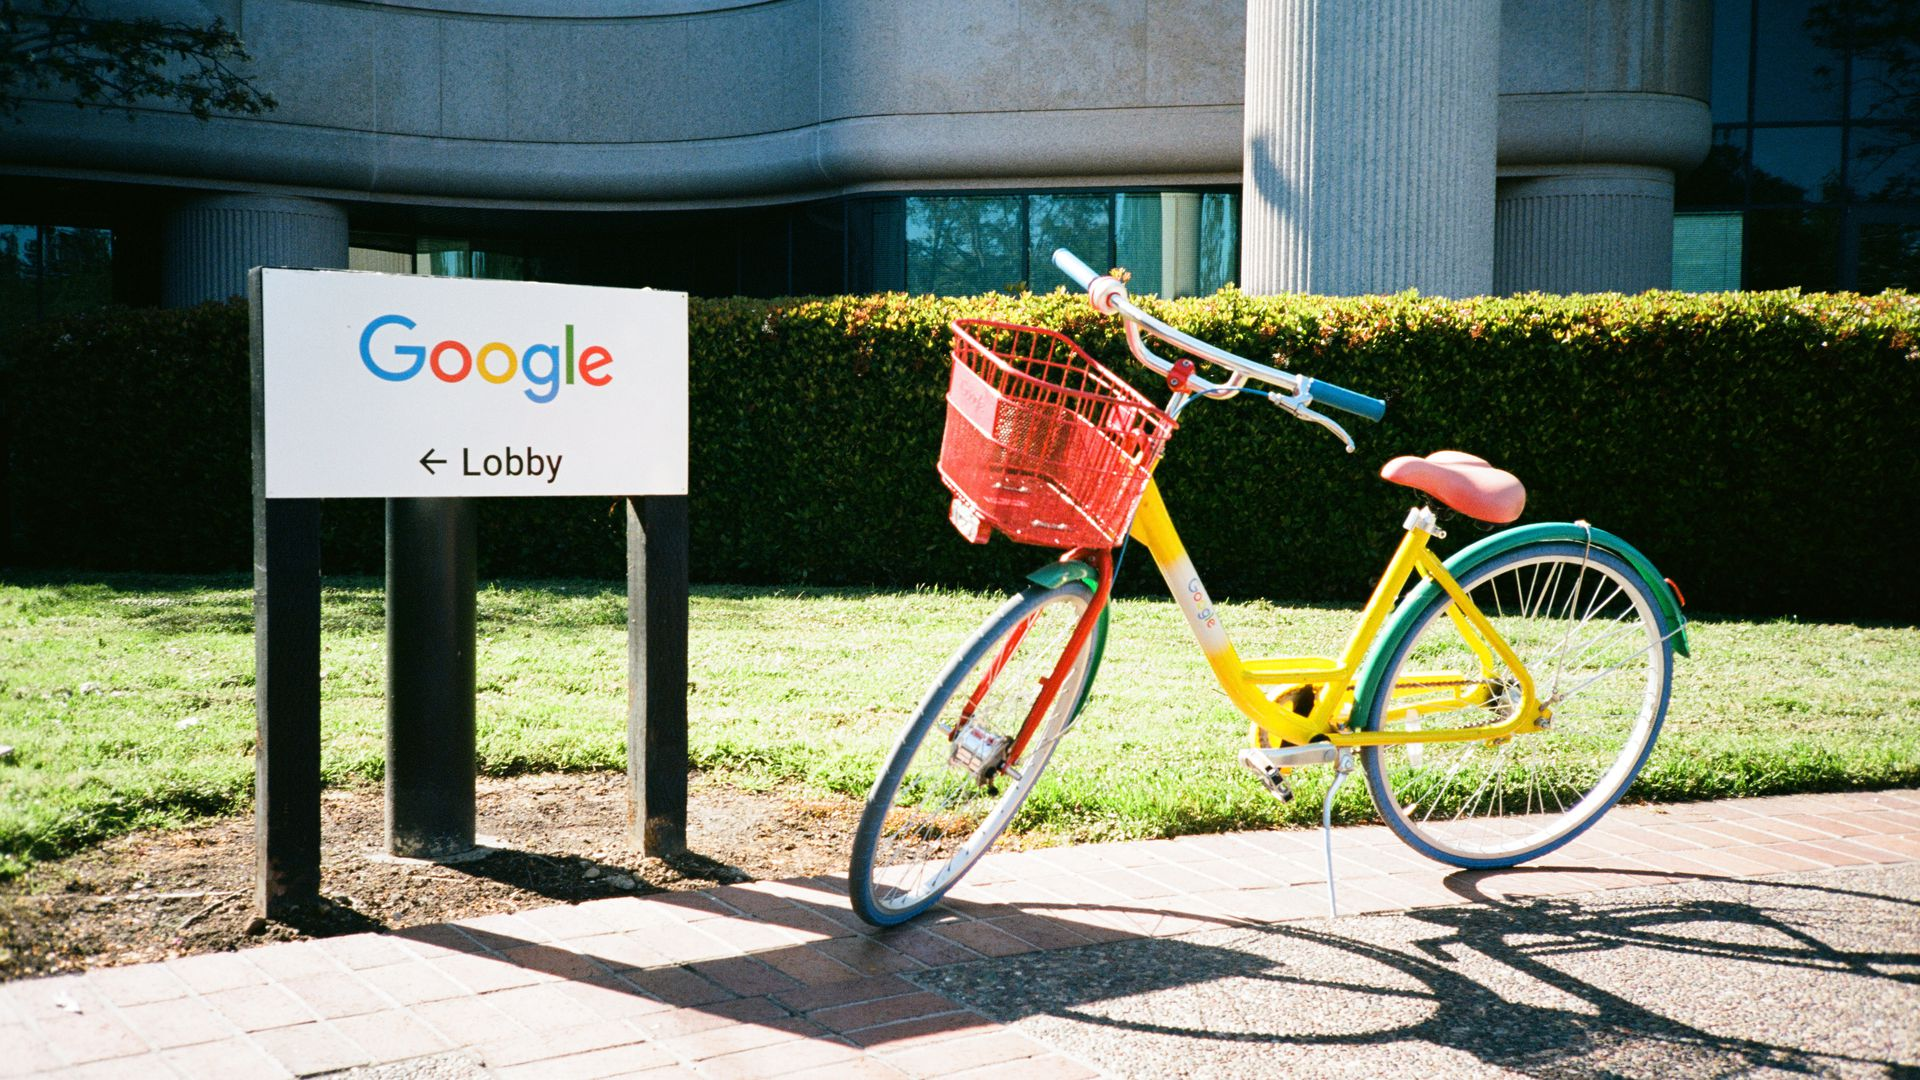 A colorful Google bike on the Google campus